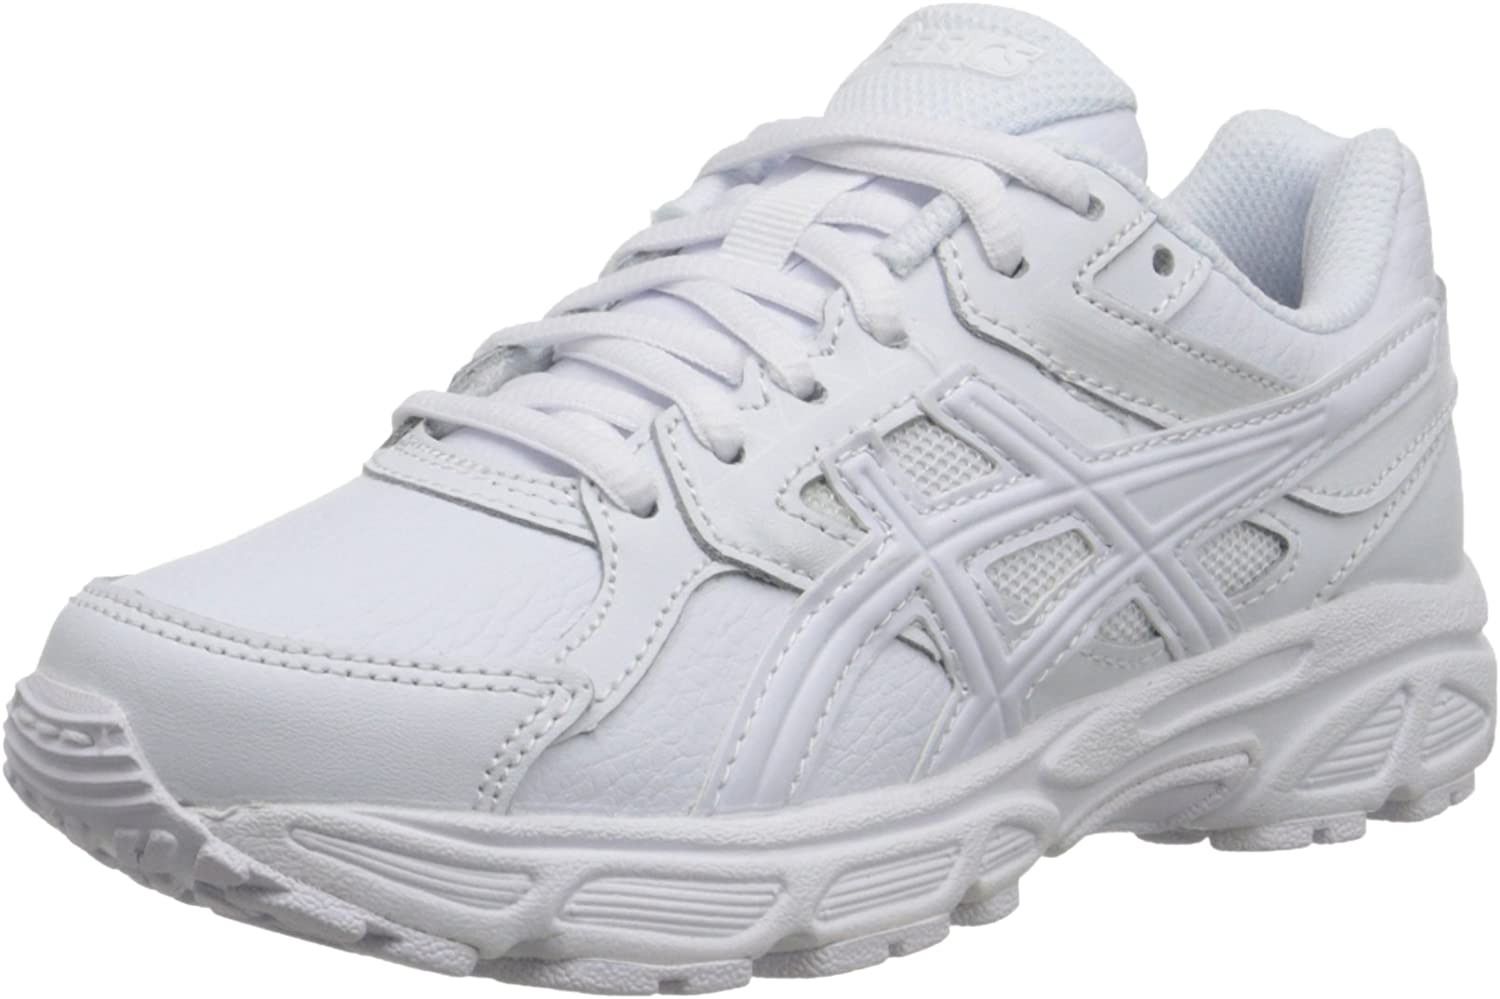 ASICS Zapatillas para correr Gel Contend 3 GS SL (Ni?o peque?o / Ni?o grande), Triple / Blanco / Nieve, 6,5 M US Big Kid: Amazon.es: Zapatos y complementos